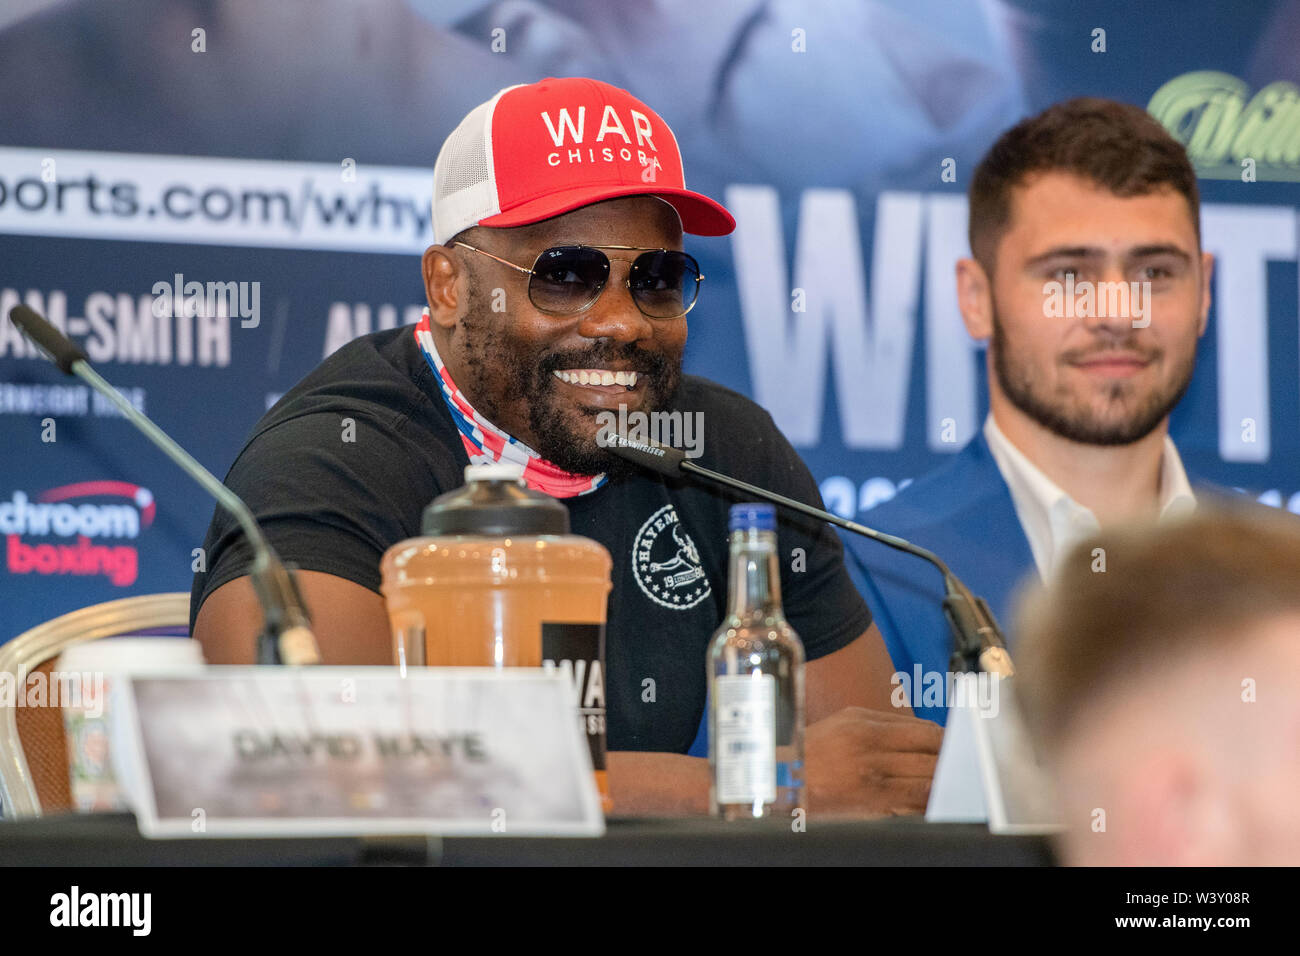 LONDON, UNITED KINGDOM. 18th Jul, 2019. Derek Chisora aka Derek War (left) and Dave Allen (right) during Matchroomboxing presents Dillian Whyte vs Oscar Rivas Press Conference at Canary Riverside Plaza Hotel on Thursday, July 18, 2019 in LONDON, ENGLAND.  (Editorial use only, license required for commercial use. No use in betting, games or a single club/league/player publications.) Credit: Taka G Wu/Alamy Live News Stock Photo